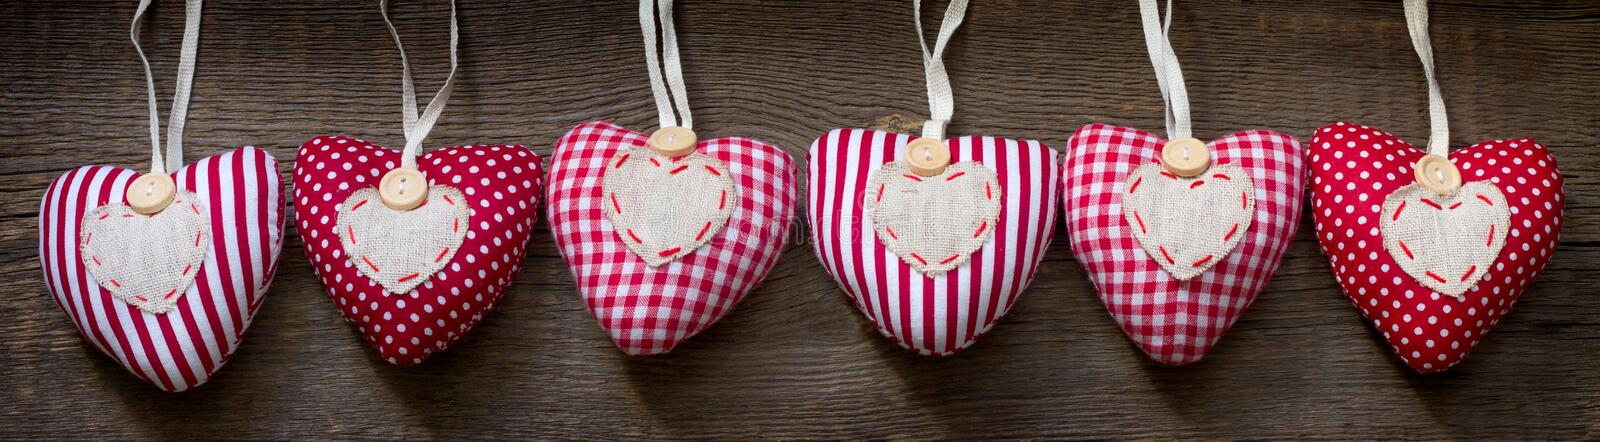 Valentine`s day love fabric homemade hearts banner concept on old vintage wooden retro background. Closeup stock photography